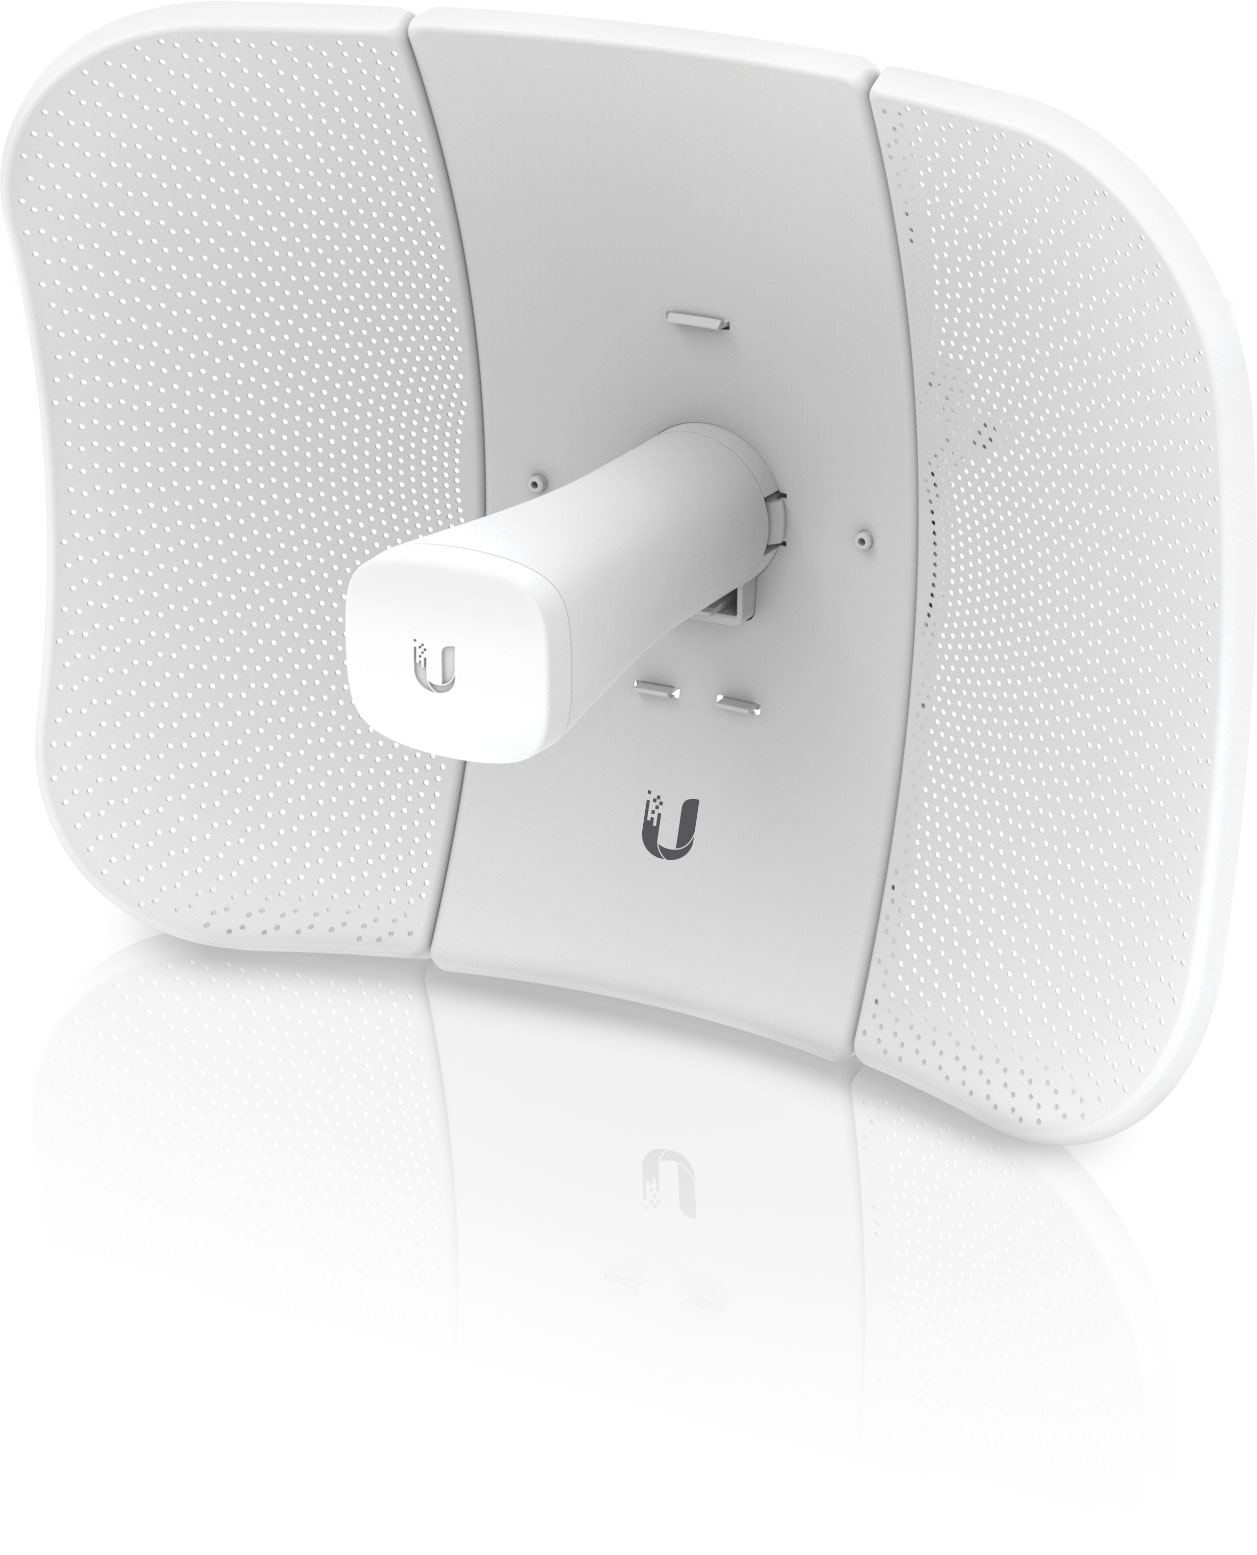 Point d 39 acc s cpe ext rieur ubiquiti litebeam 5ac 23 avec for Point acces wifi exterieur